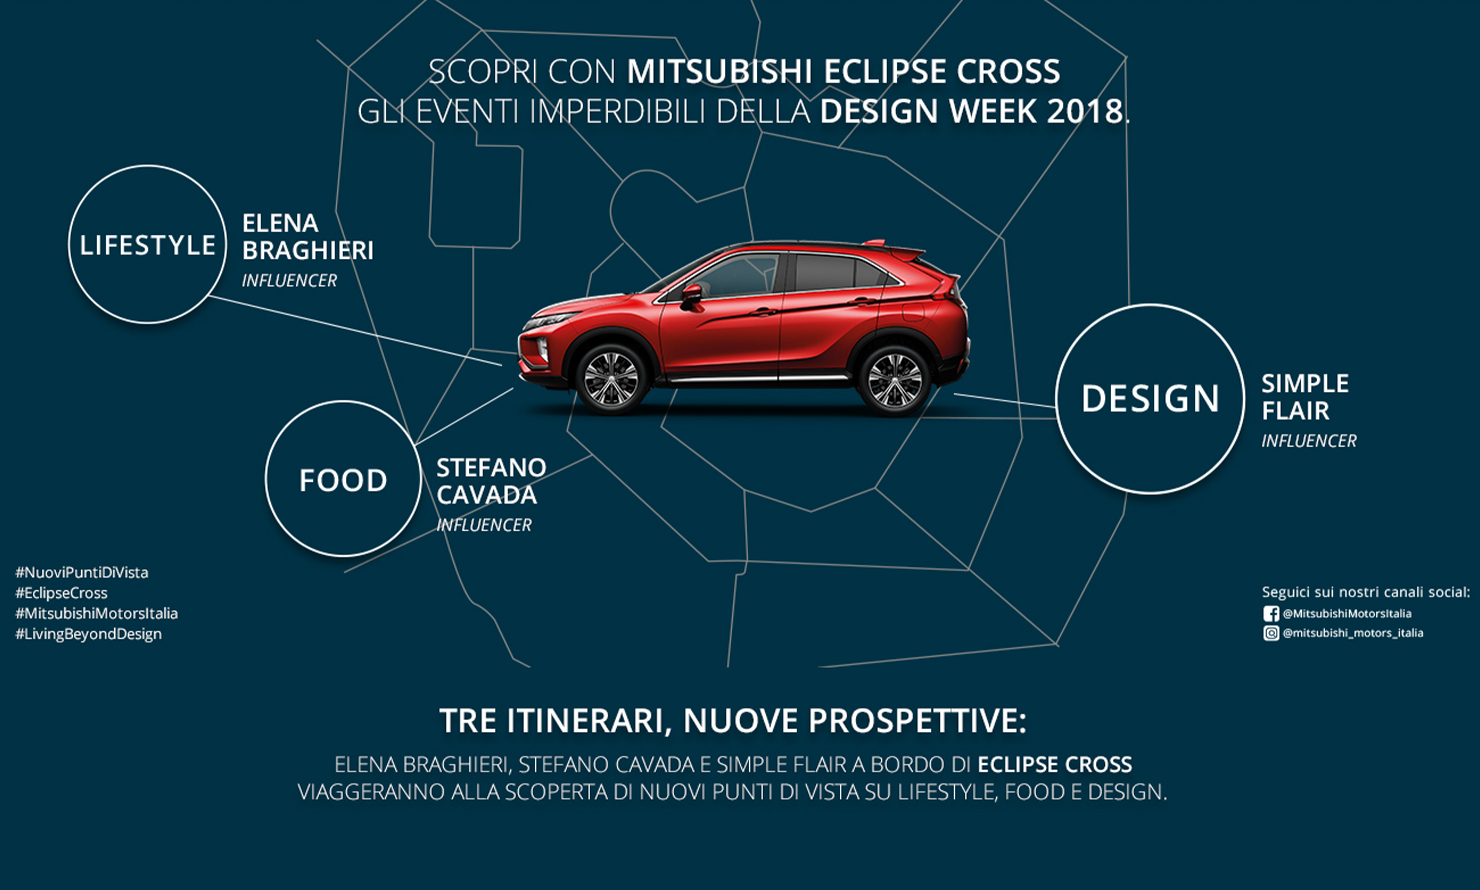 https://www.kubelibre.com/uploads/Slider-work-tutti-clienti/mitsubishi-eclipse-cross-design-week-2.jpg